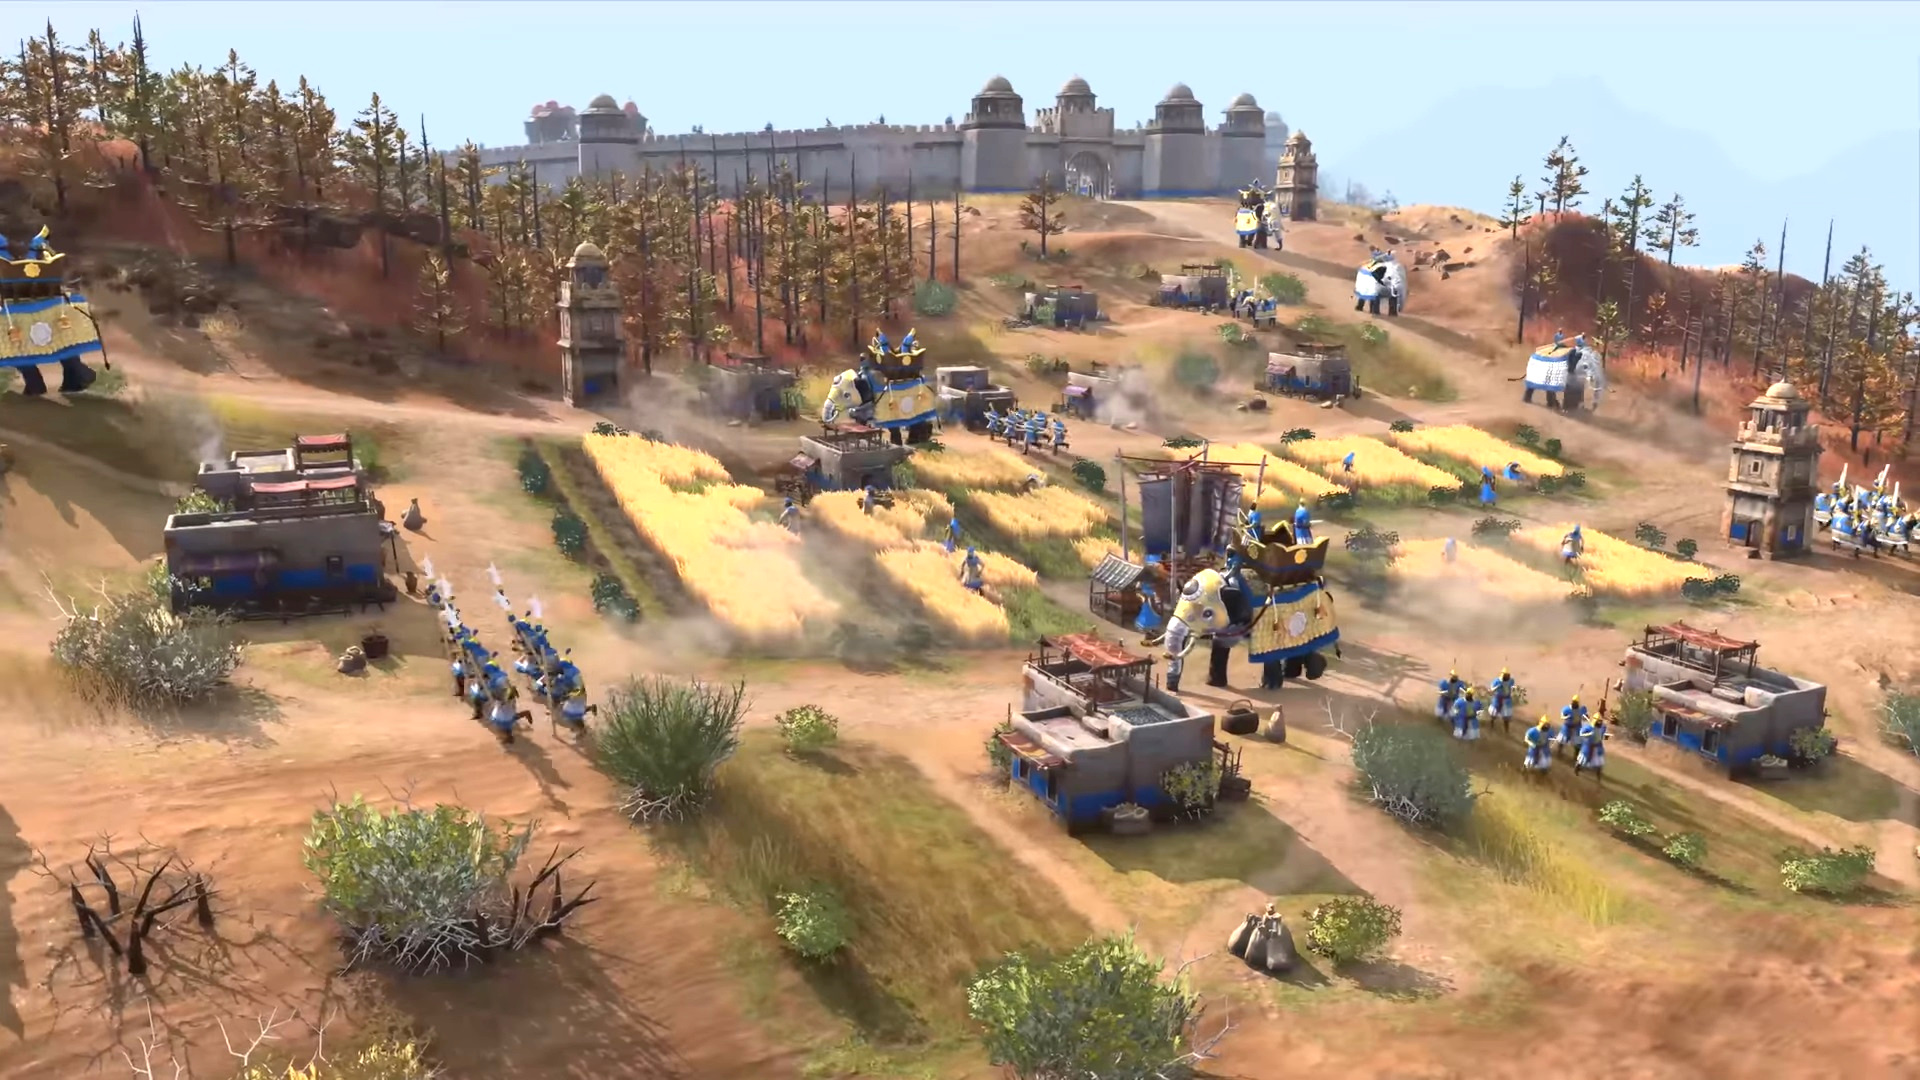 Microsoft addresses Age of Empires 4 fans' concerns over India's representation